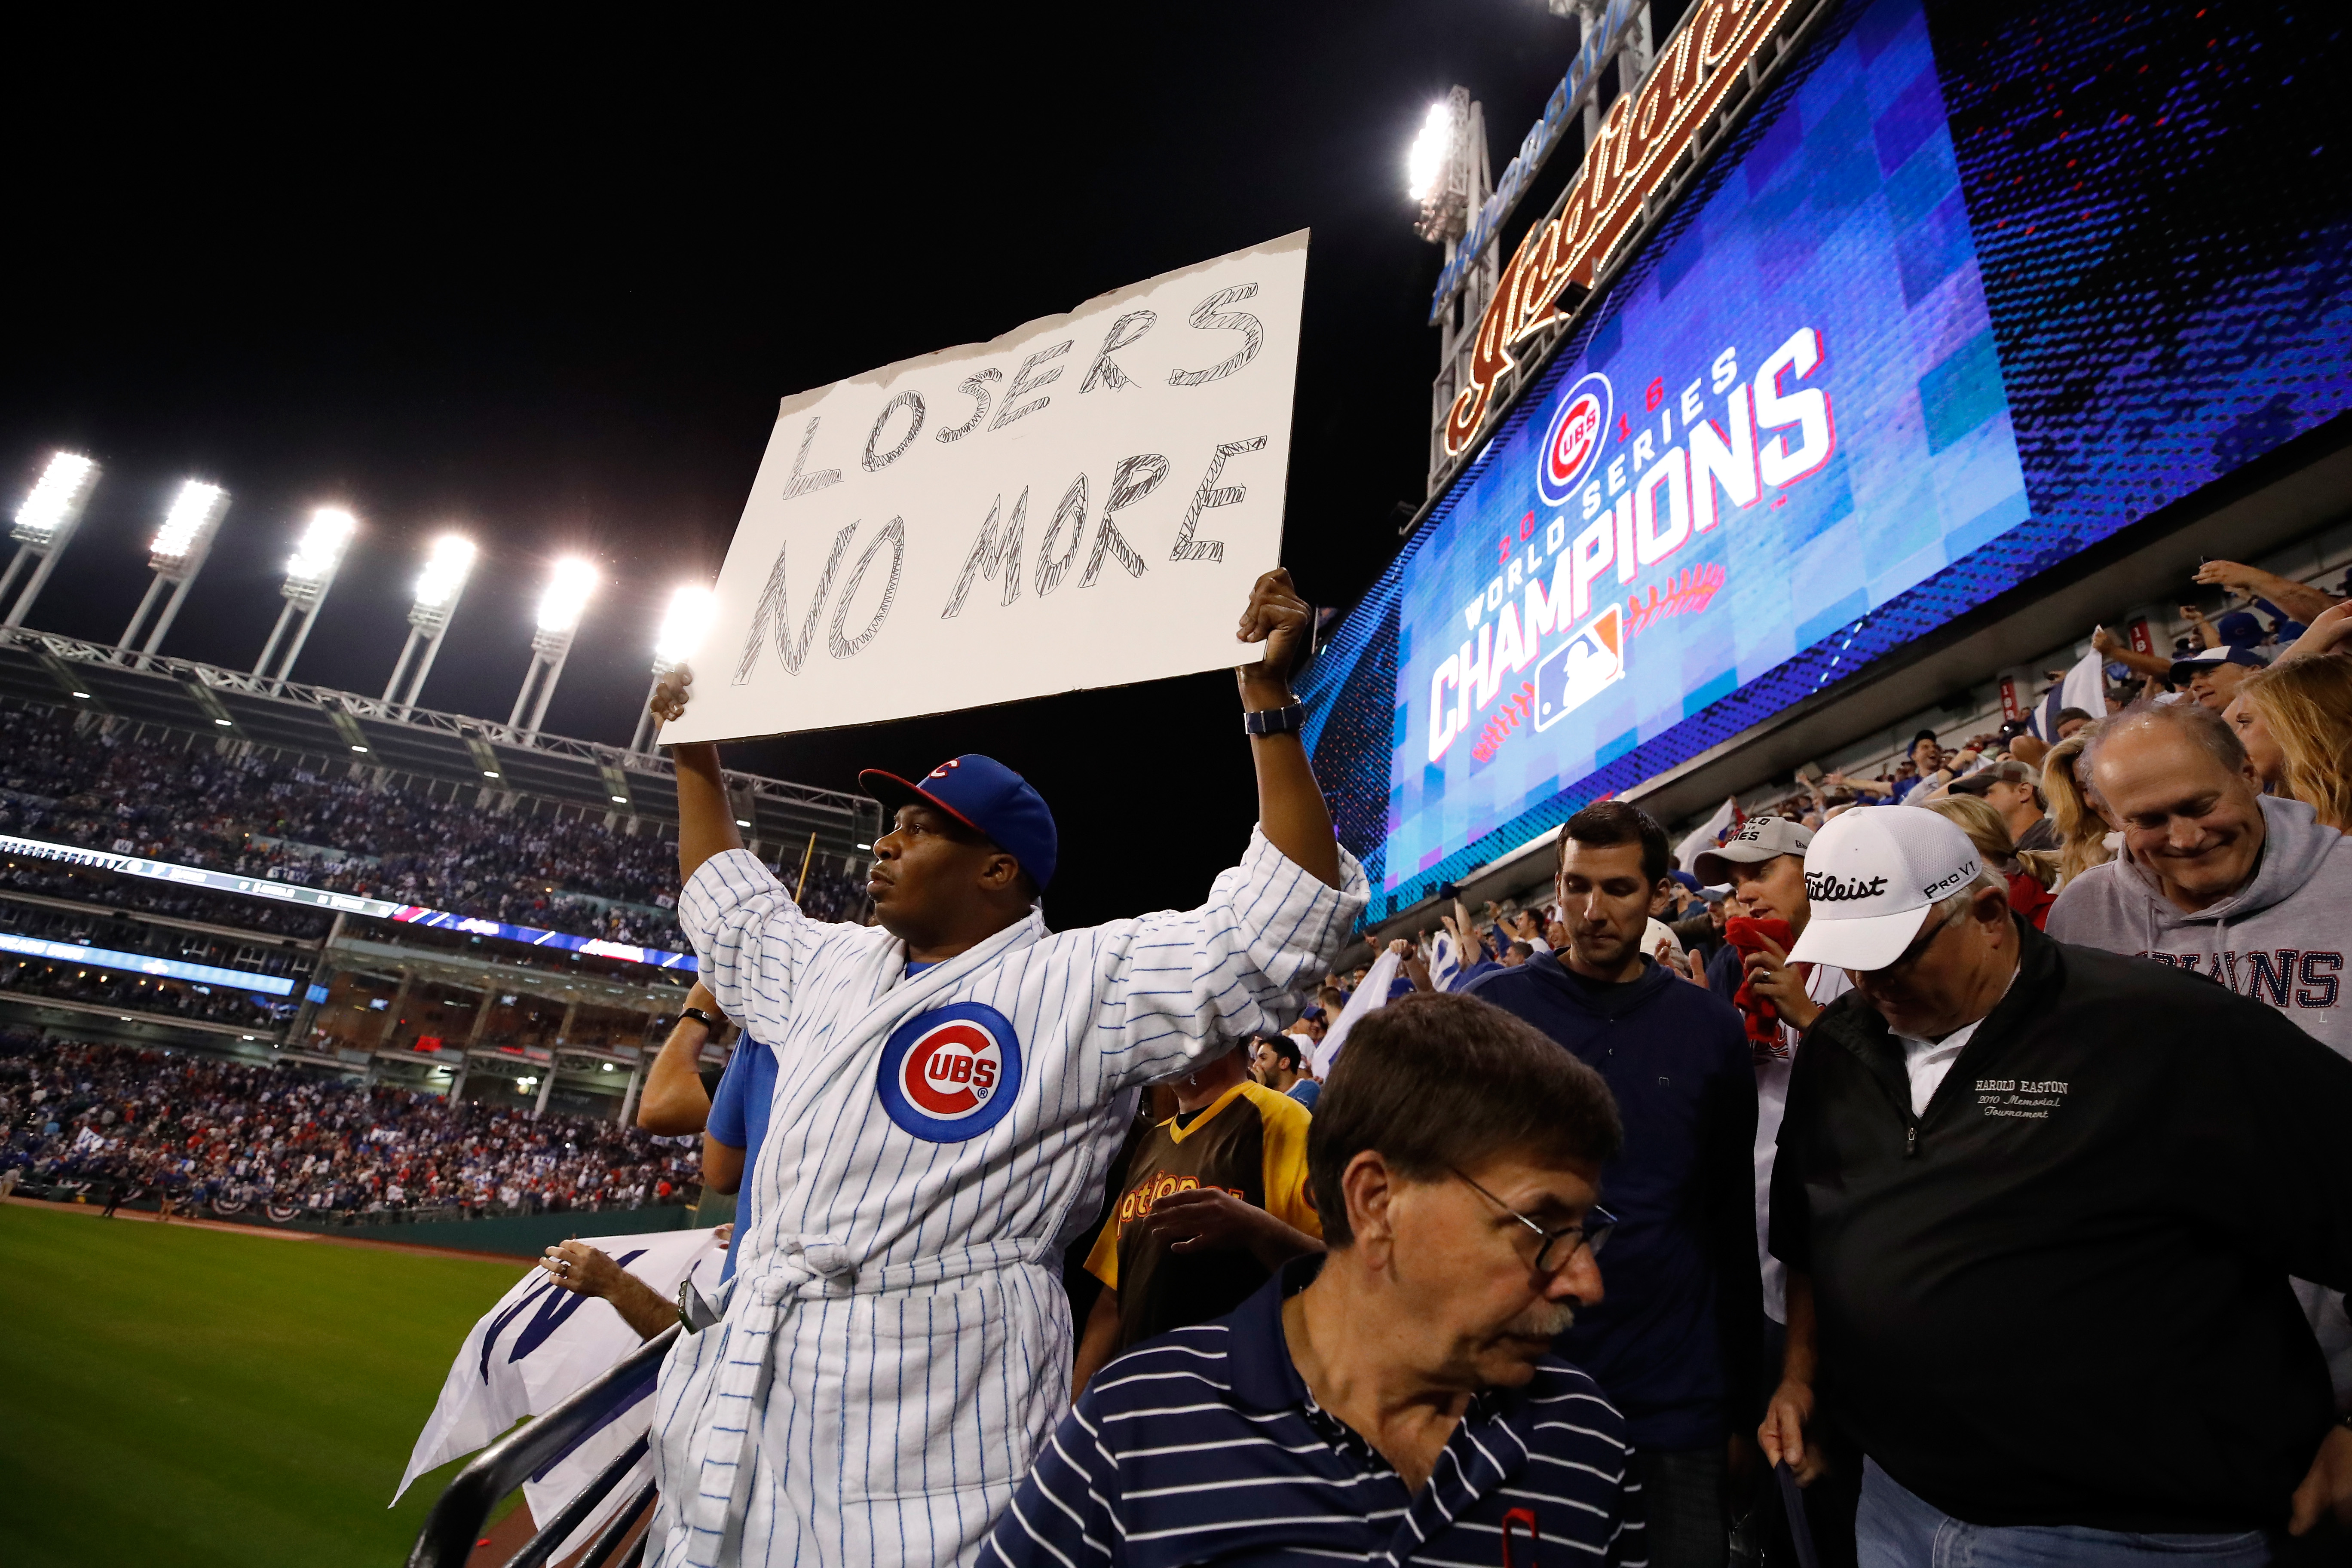 A Chicago Cubs fan holds a sign after the Cubs defeated the Cleveland Indians 8-7 in Game Seven of the 2016 World Series at Progressive Field on November 2, 2016 in Cleveland, Ohio. The Cubs win their first World Series in 108 years.